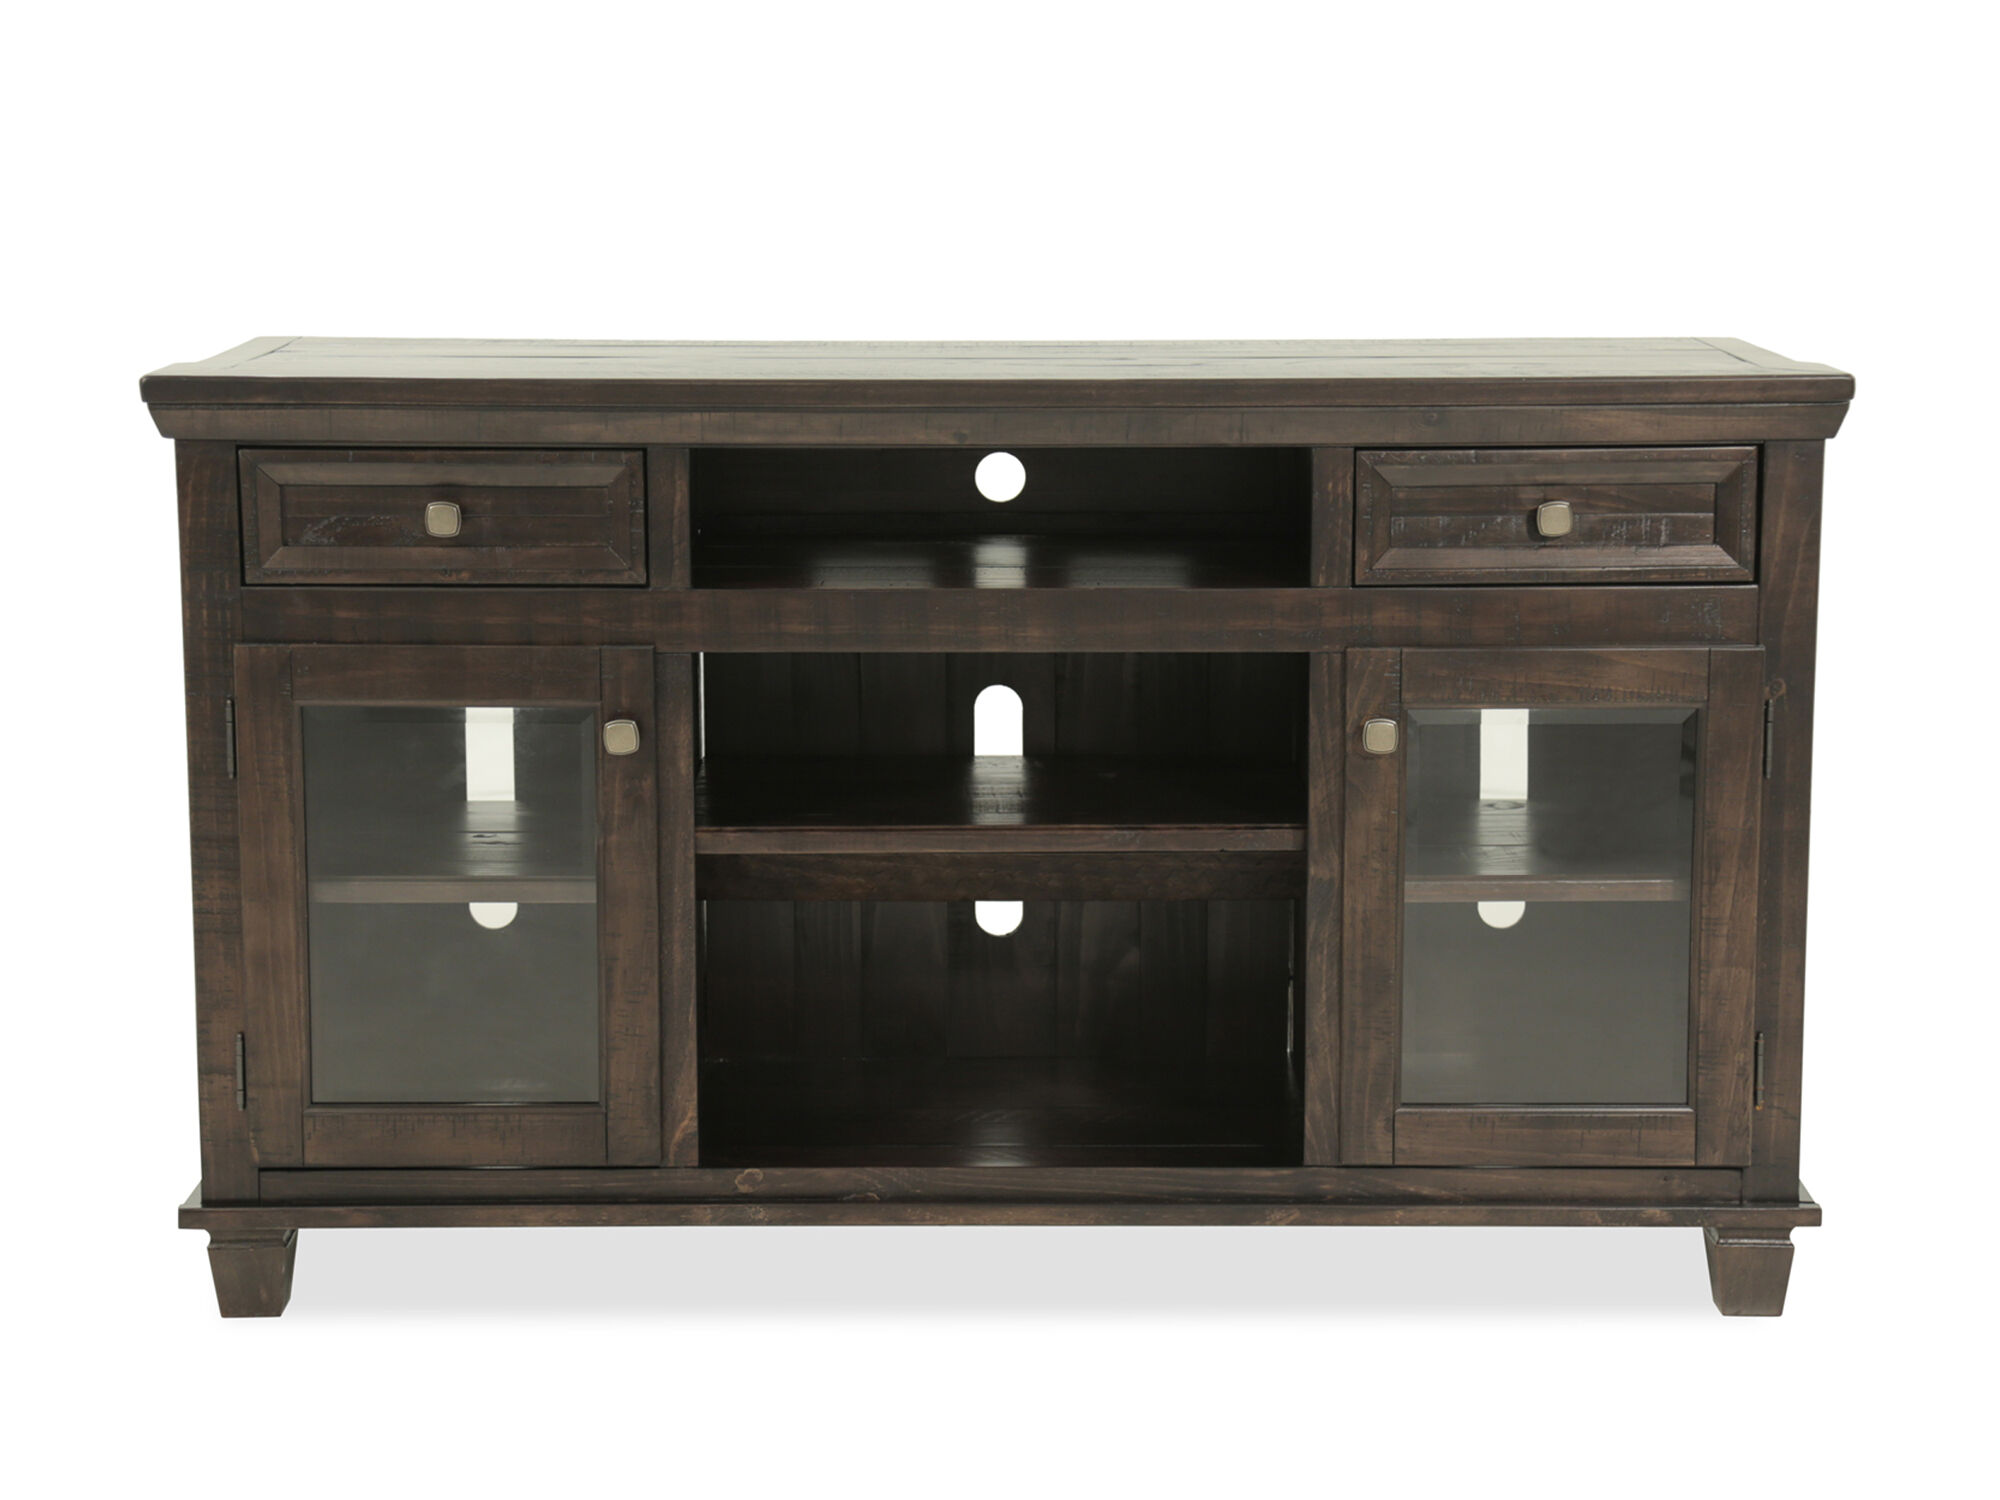 Sawn Distressed Solid Pine TV Stand In Brown Mathis